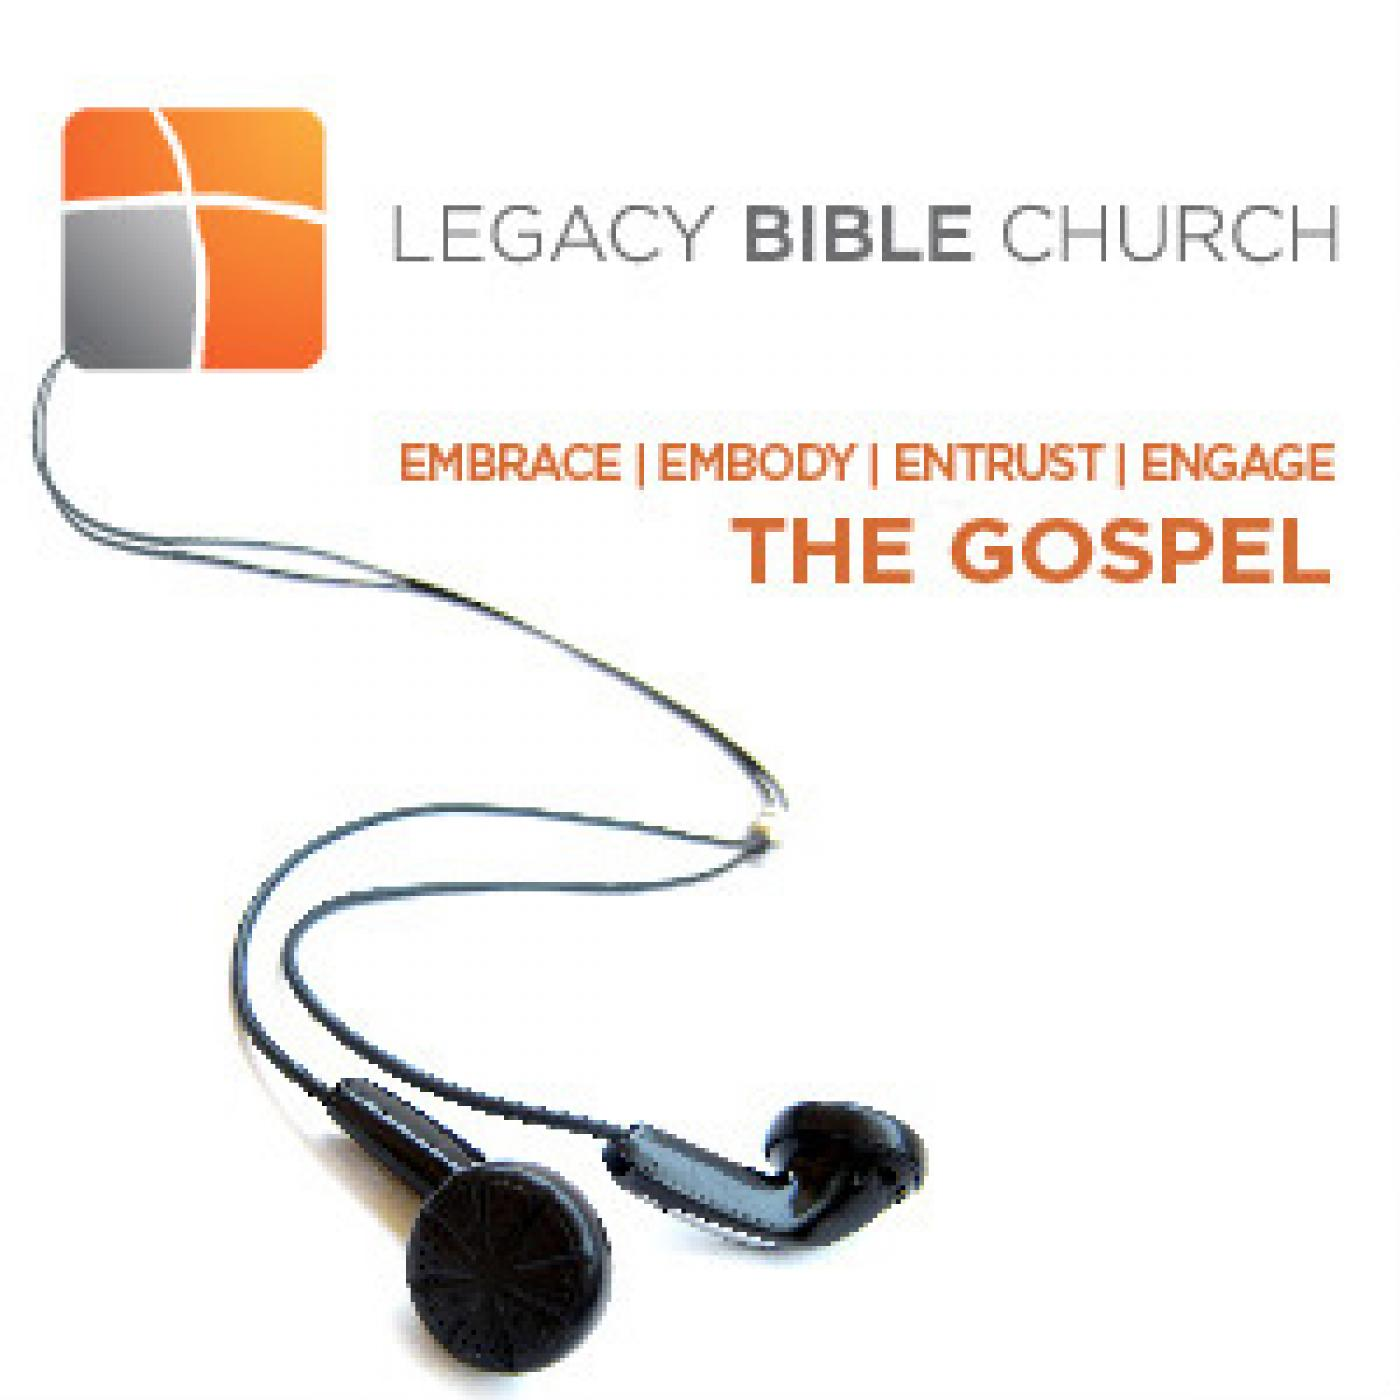 LEGACY BIBLE CHURCH > Embrace, Embody, Entrust & Engage the Gospel